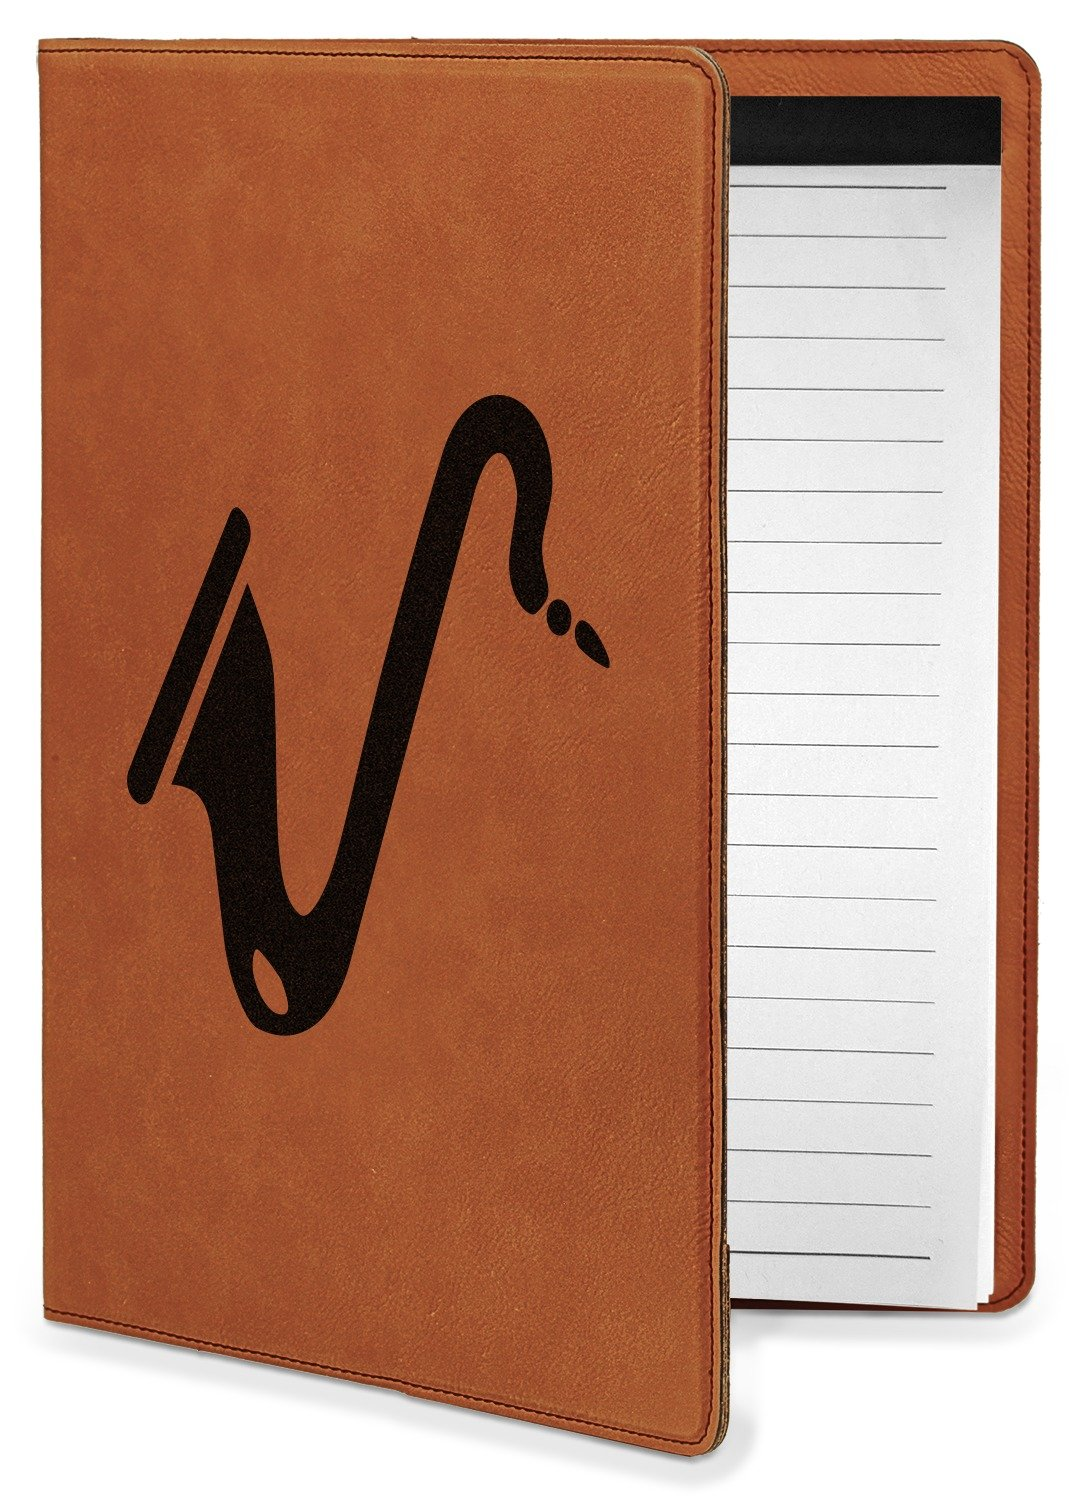 Musical Instruments Leatherette Portfolio with Notepad - Small - Double Sided (Personalized)